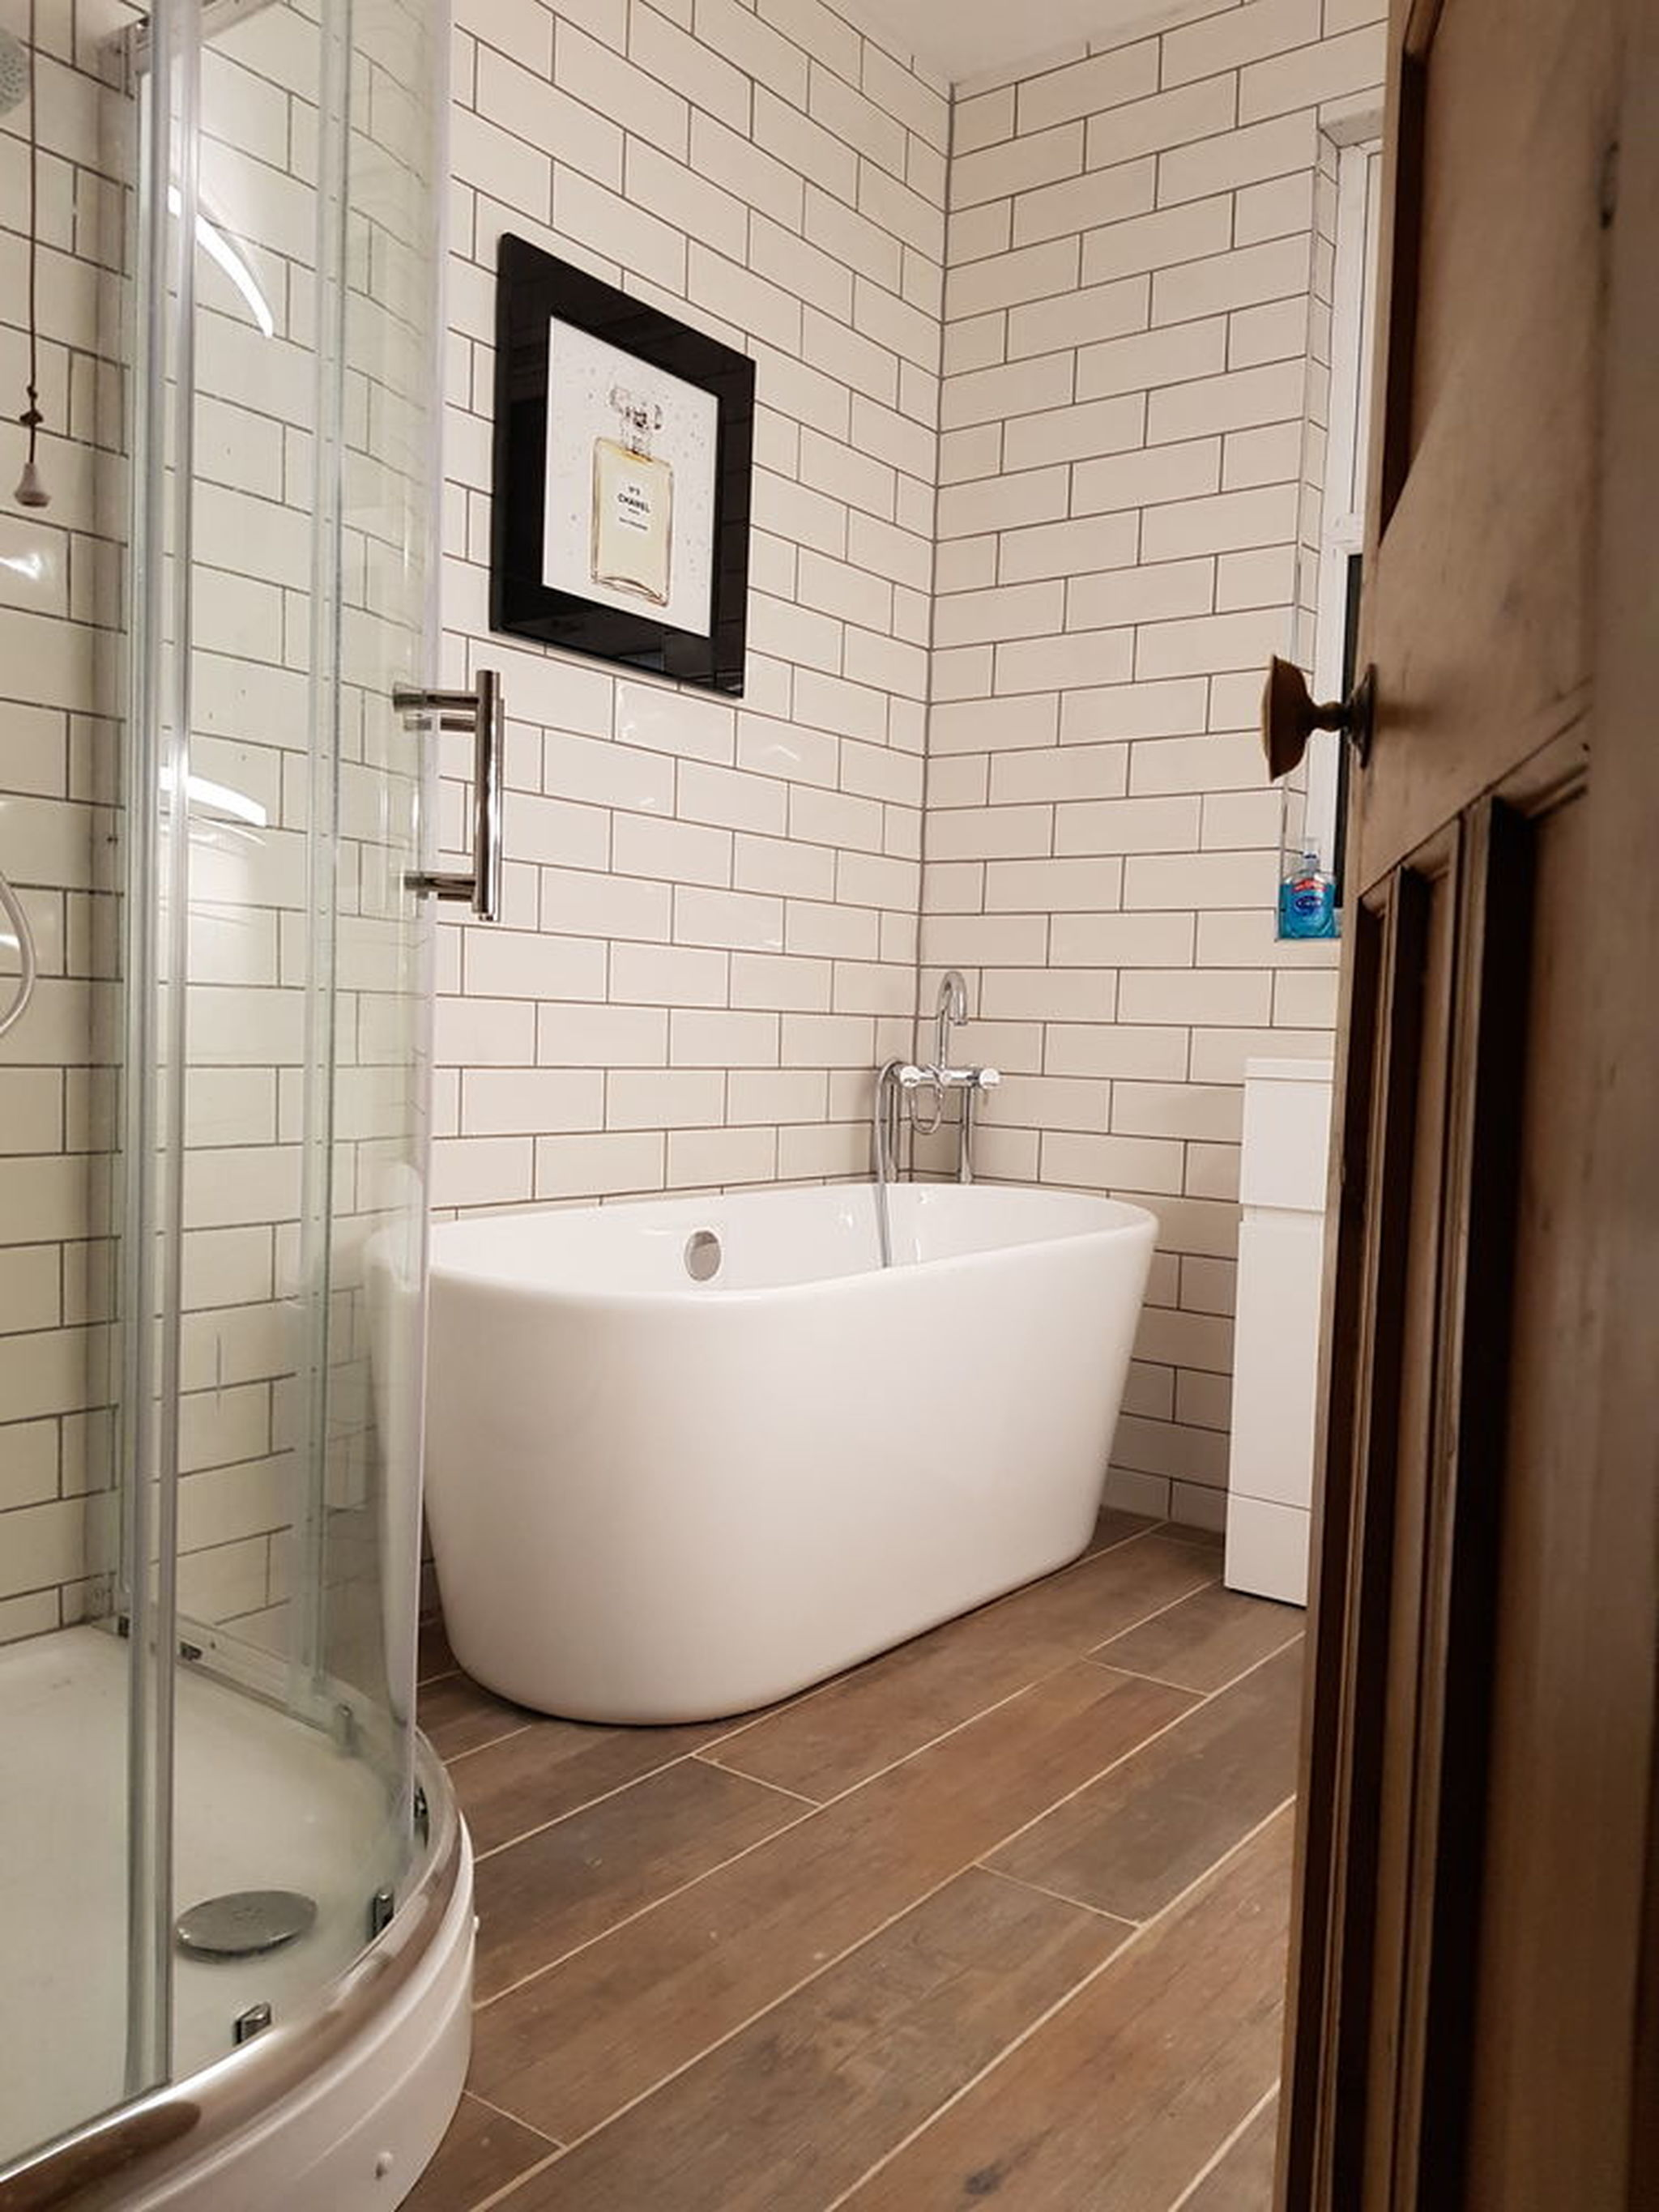 Bathroom refit - Job of the Year 2018 - COMPETITION CLOSED